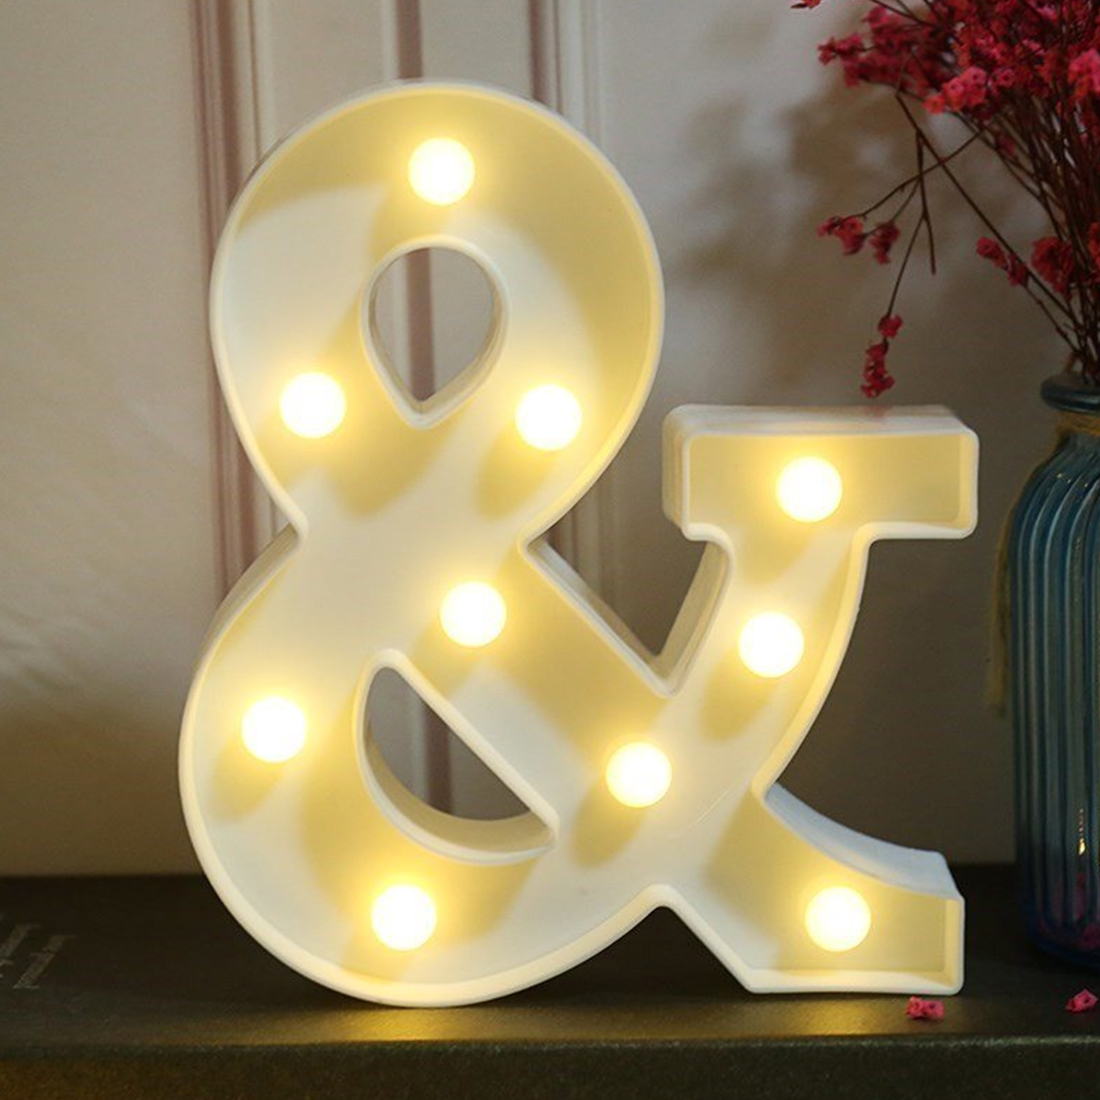 New 3D & White Letter LED Marquee Sign Alphabet Light Indoor Wall Hanging Night Light Bedroom Wedding Birthday Party DecorNew 3D & White Letter LED Marquee Sign Alphabet Light Indoor Wall Hanging Night Light Bedroom Wedding Birthday Party Decor